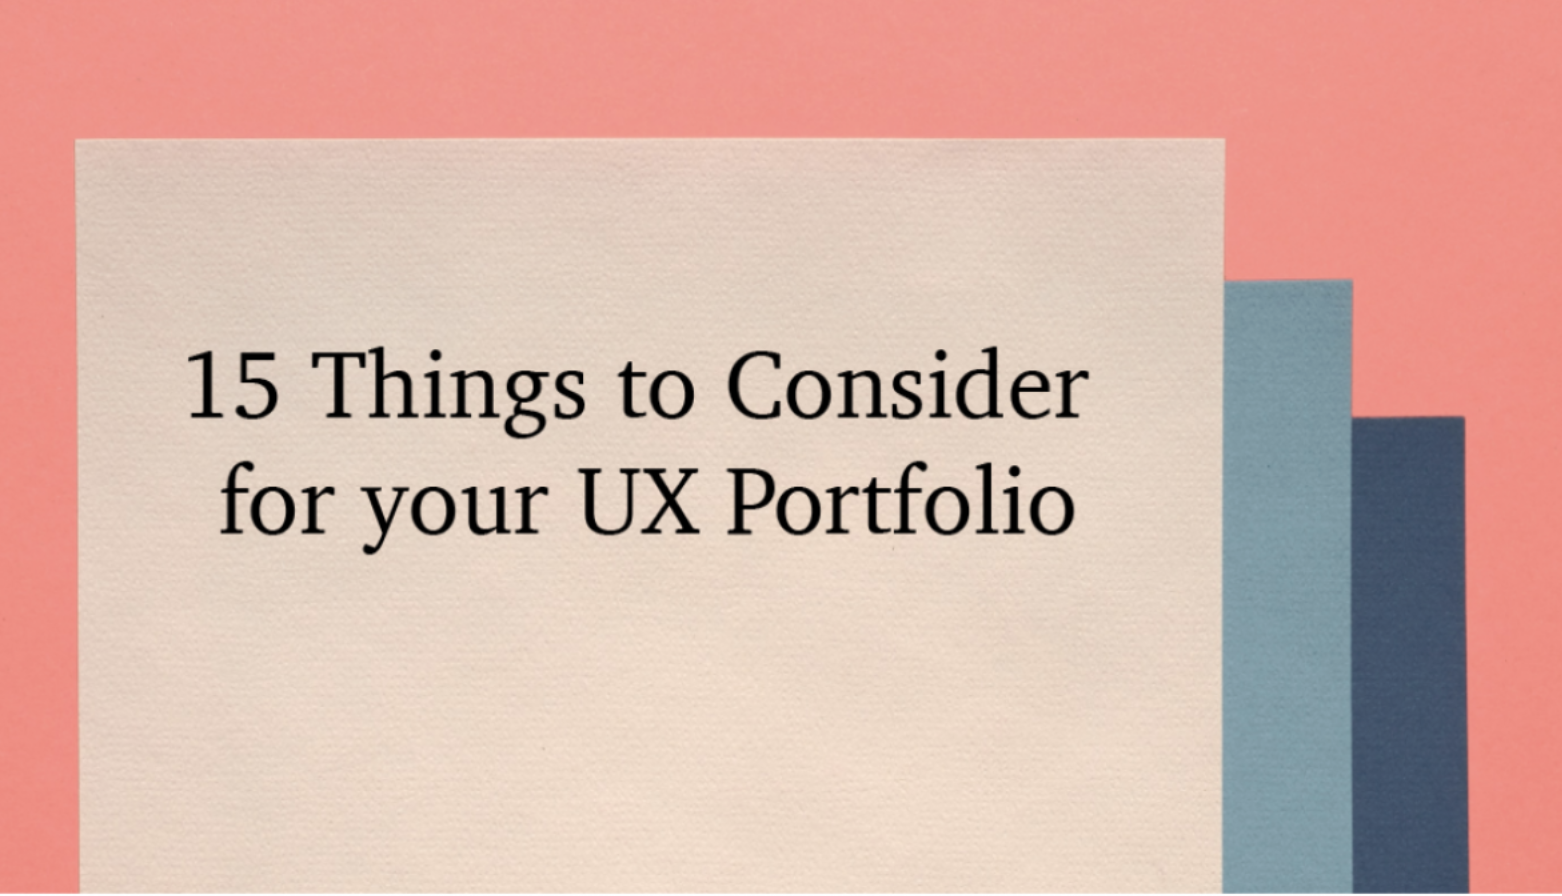 15 Things to Consider for Your UX Portfolio